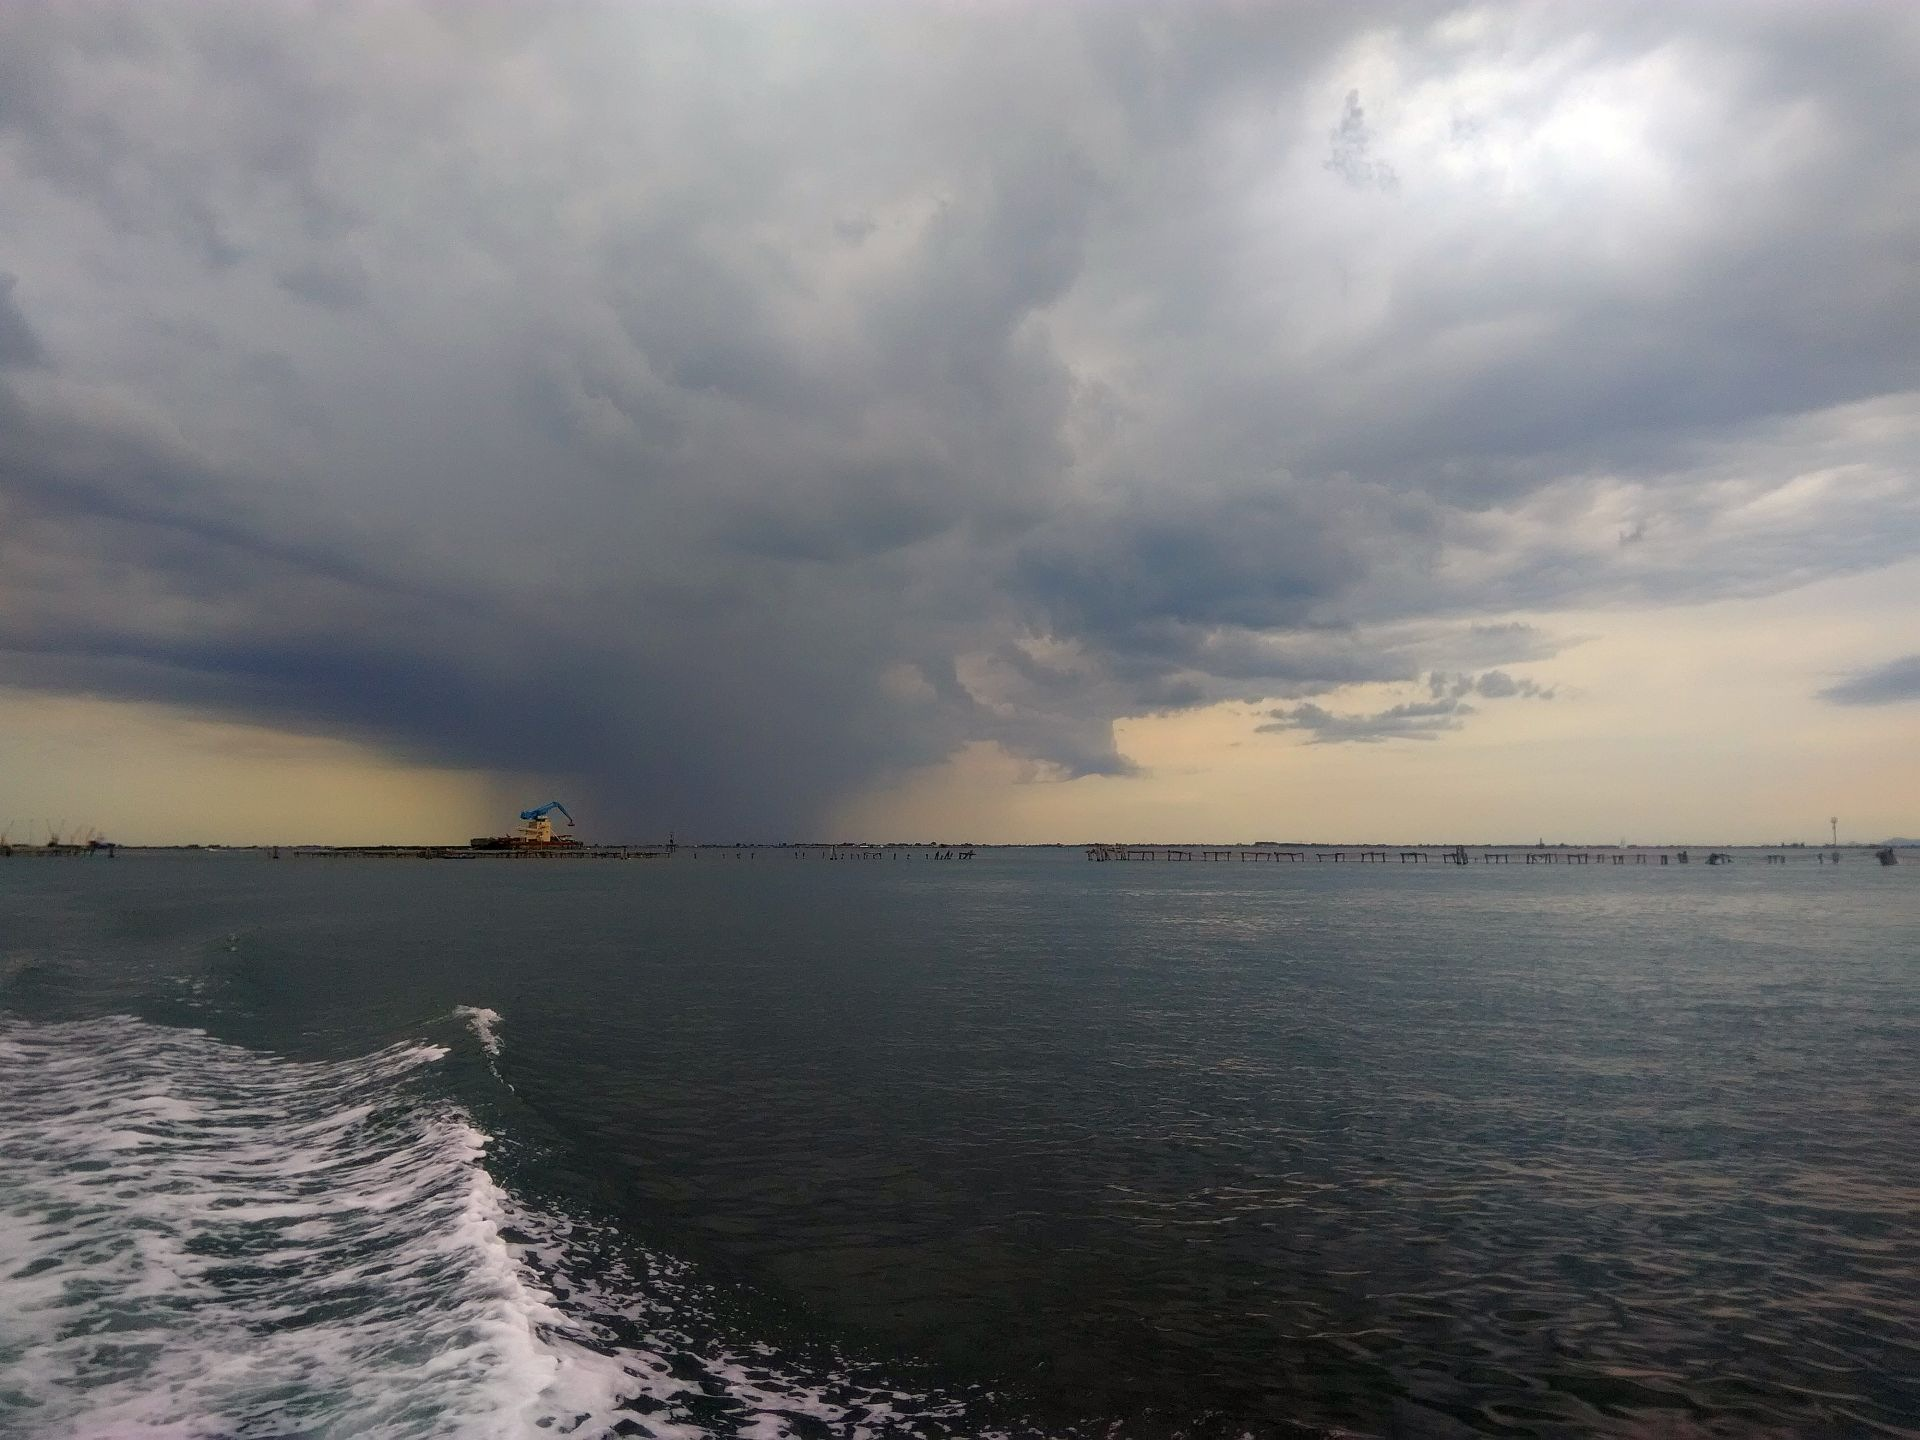 Incoming storm by Eugenio Penzo